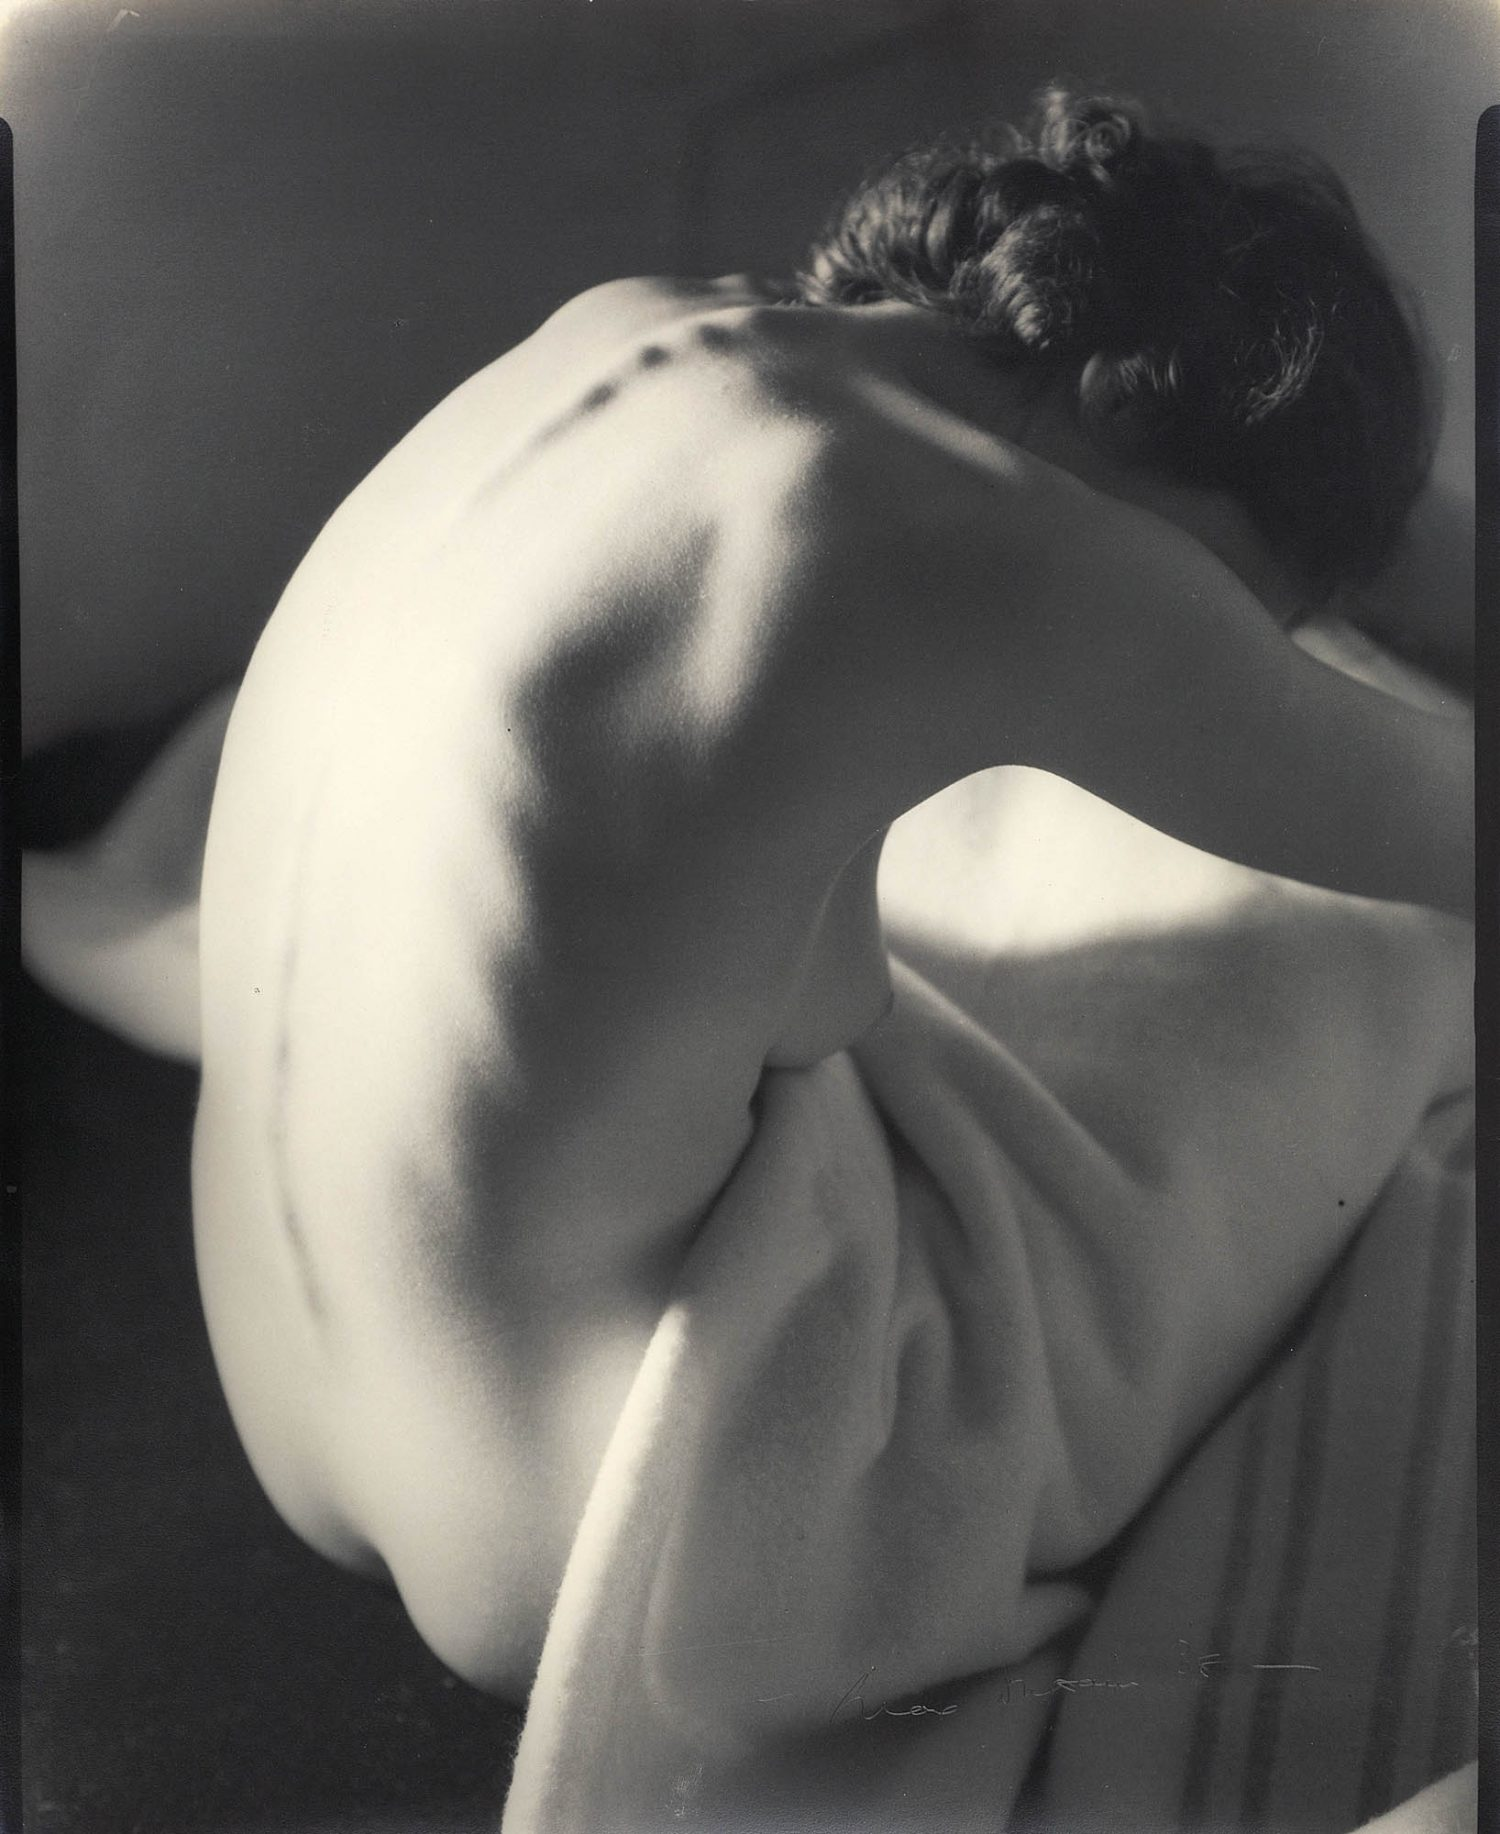 Max Dupain (1911-1992), The Little Nude